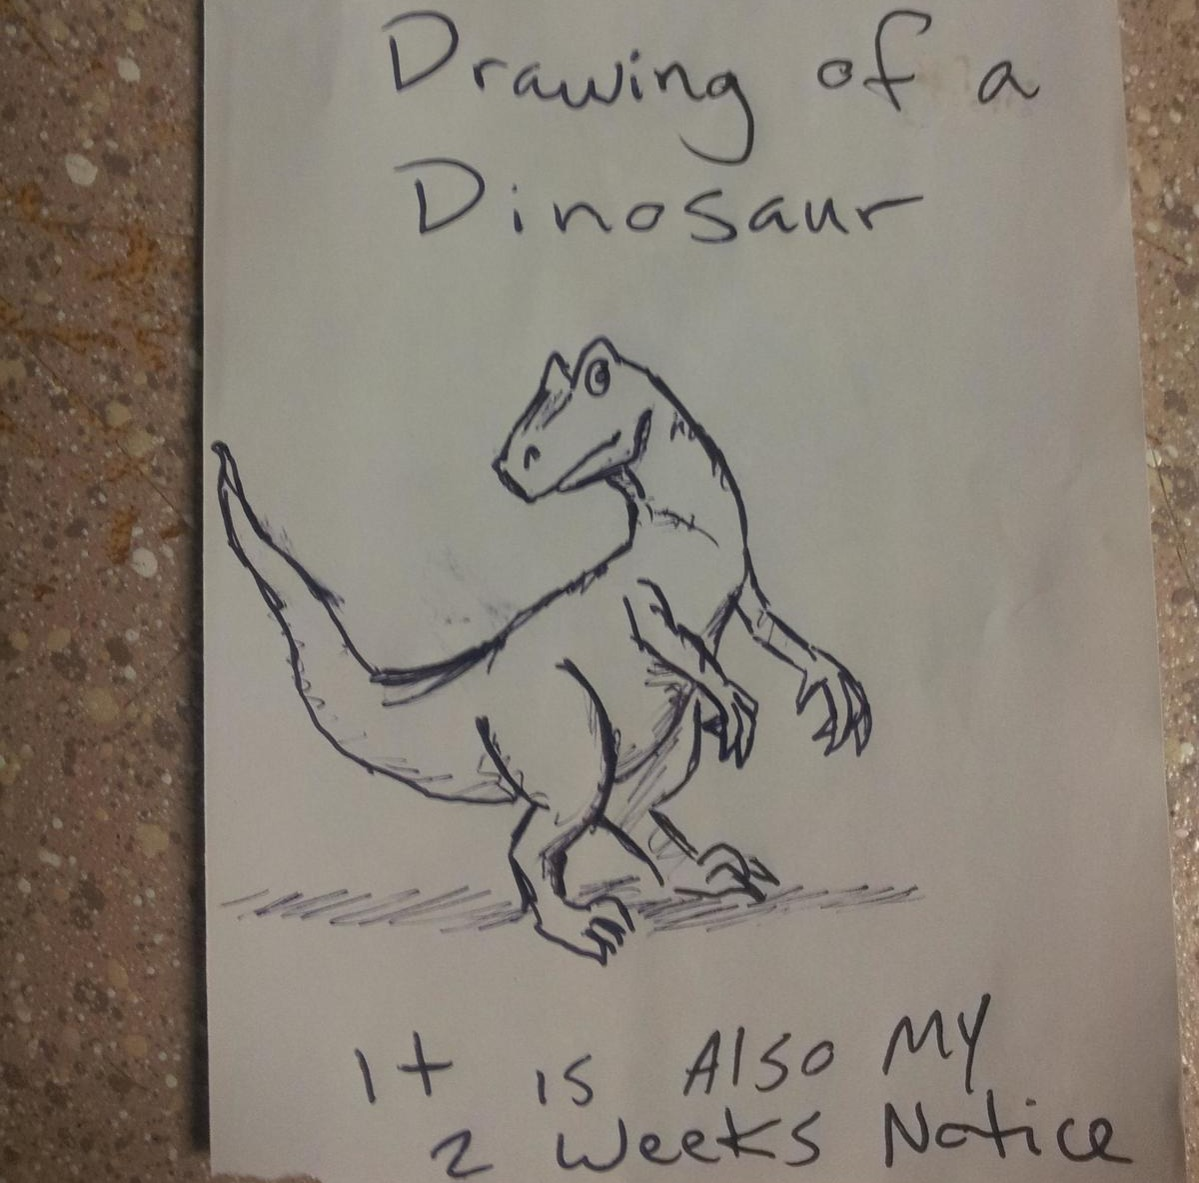 this drawing of a dinosaur has a resignation note on it